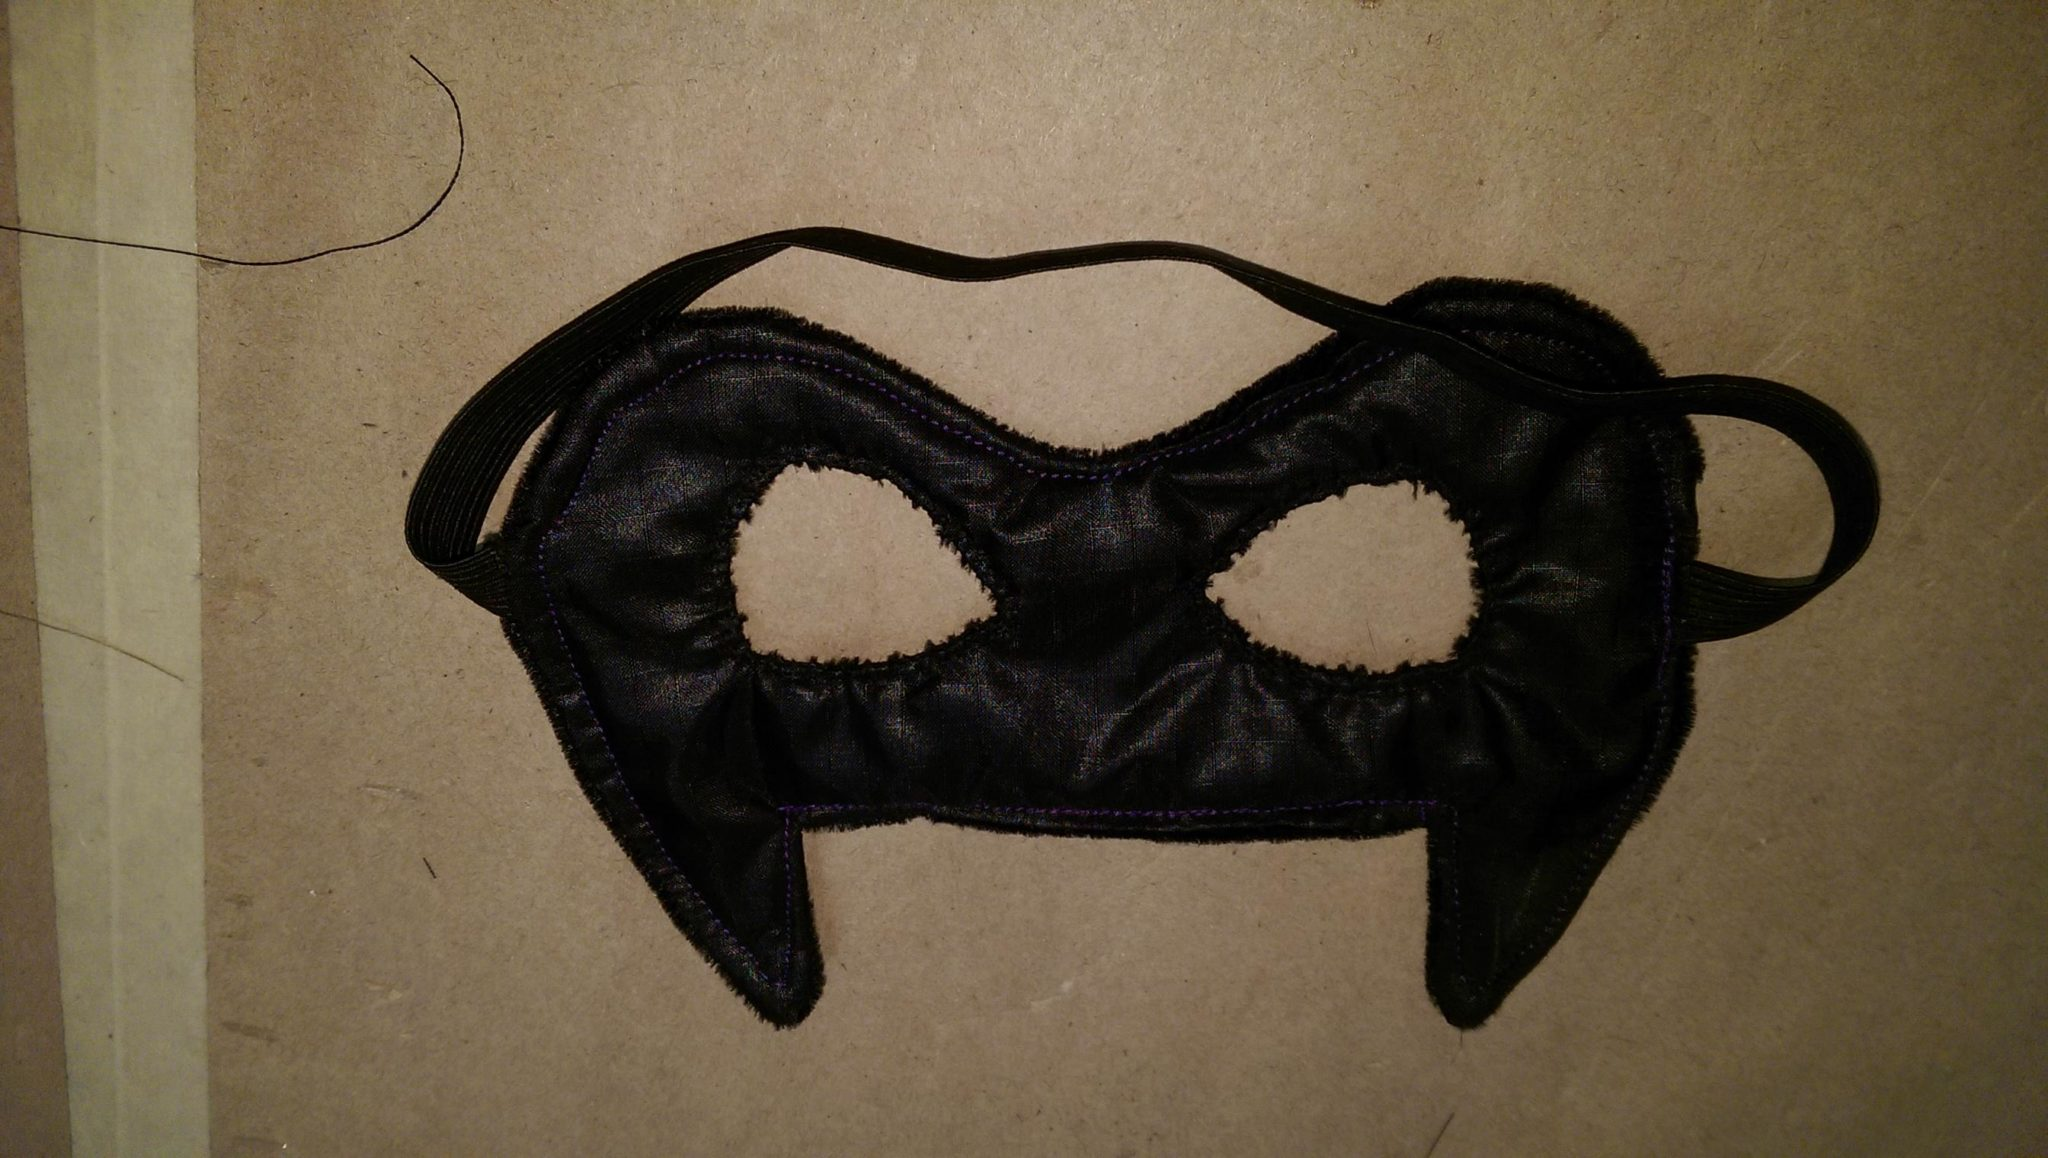 Batman mask with the eyes whipstitched